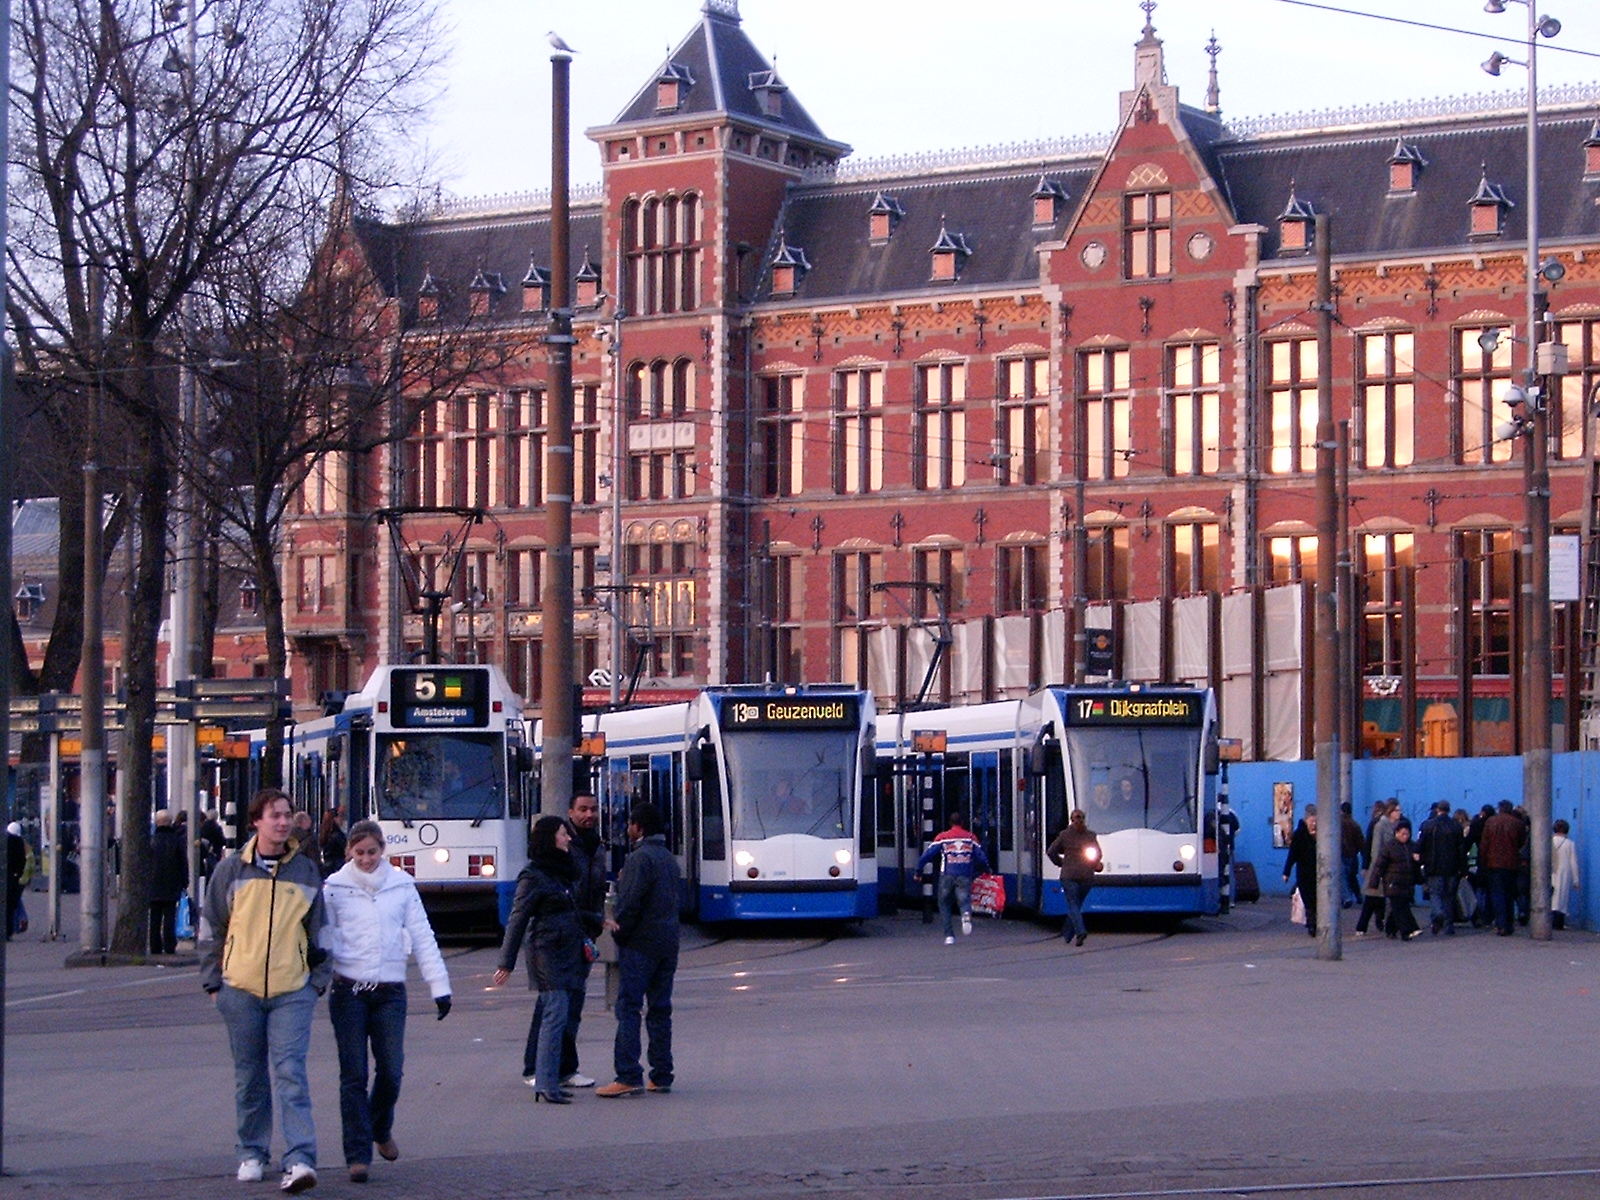 File:GVB 11G 904 and two Combinos (Amsterdam tram) at Central Station on  routes 5, 13, and 17.jpg